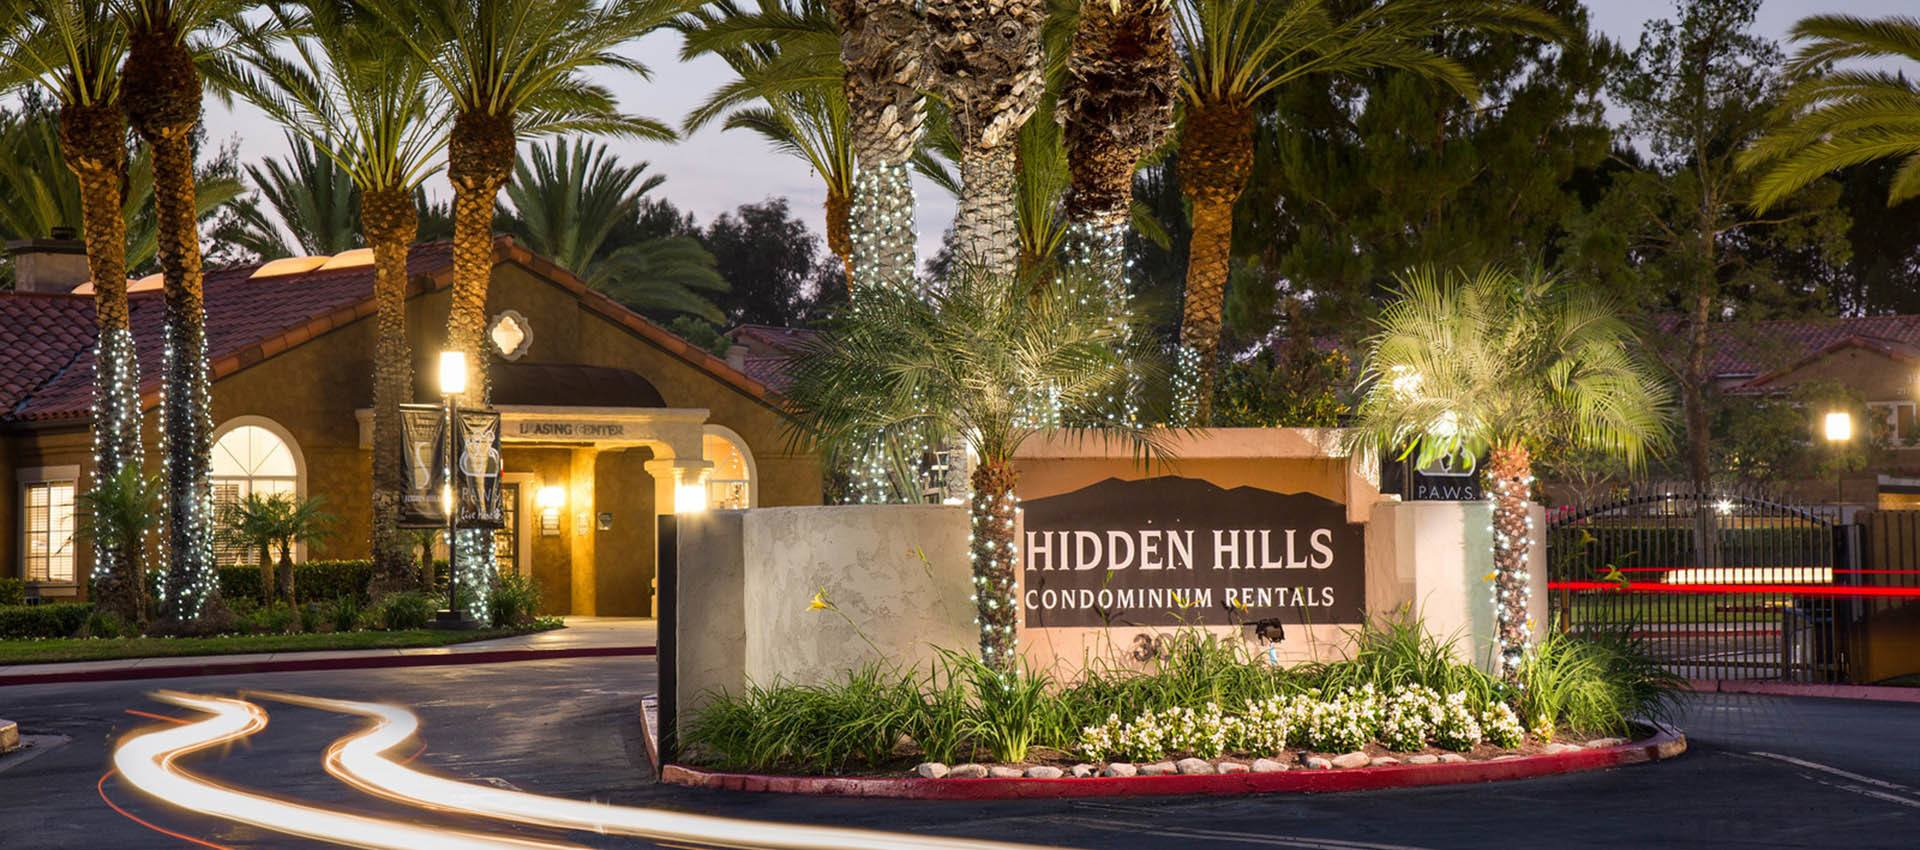 Signage at Hidden Hills Condominium Rentals in Laguna Niguel, CA